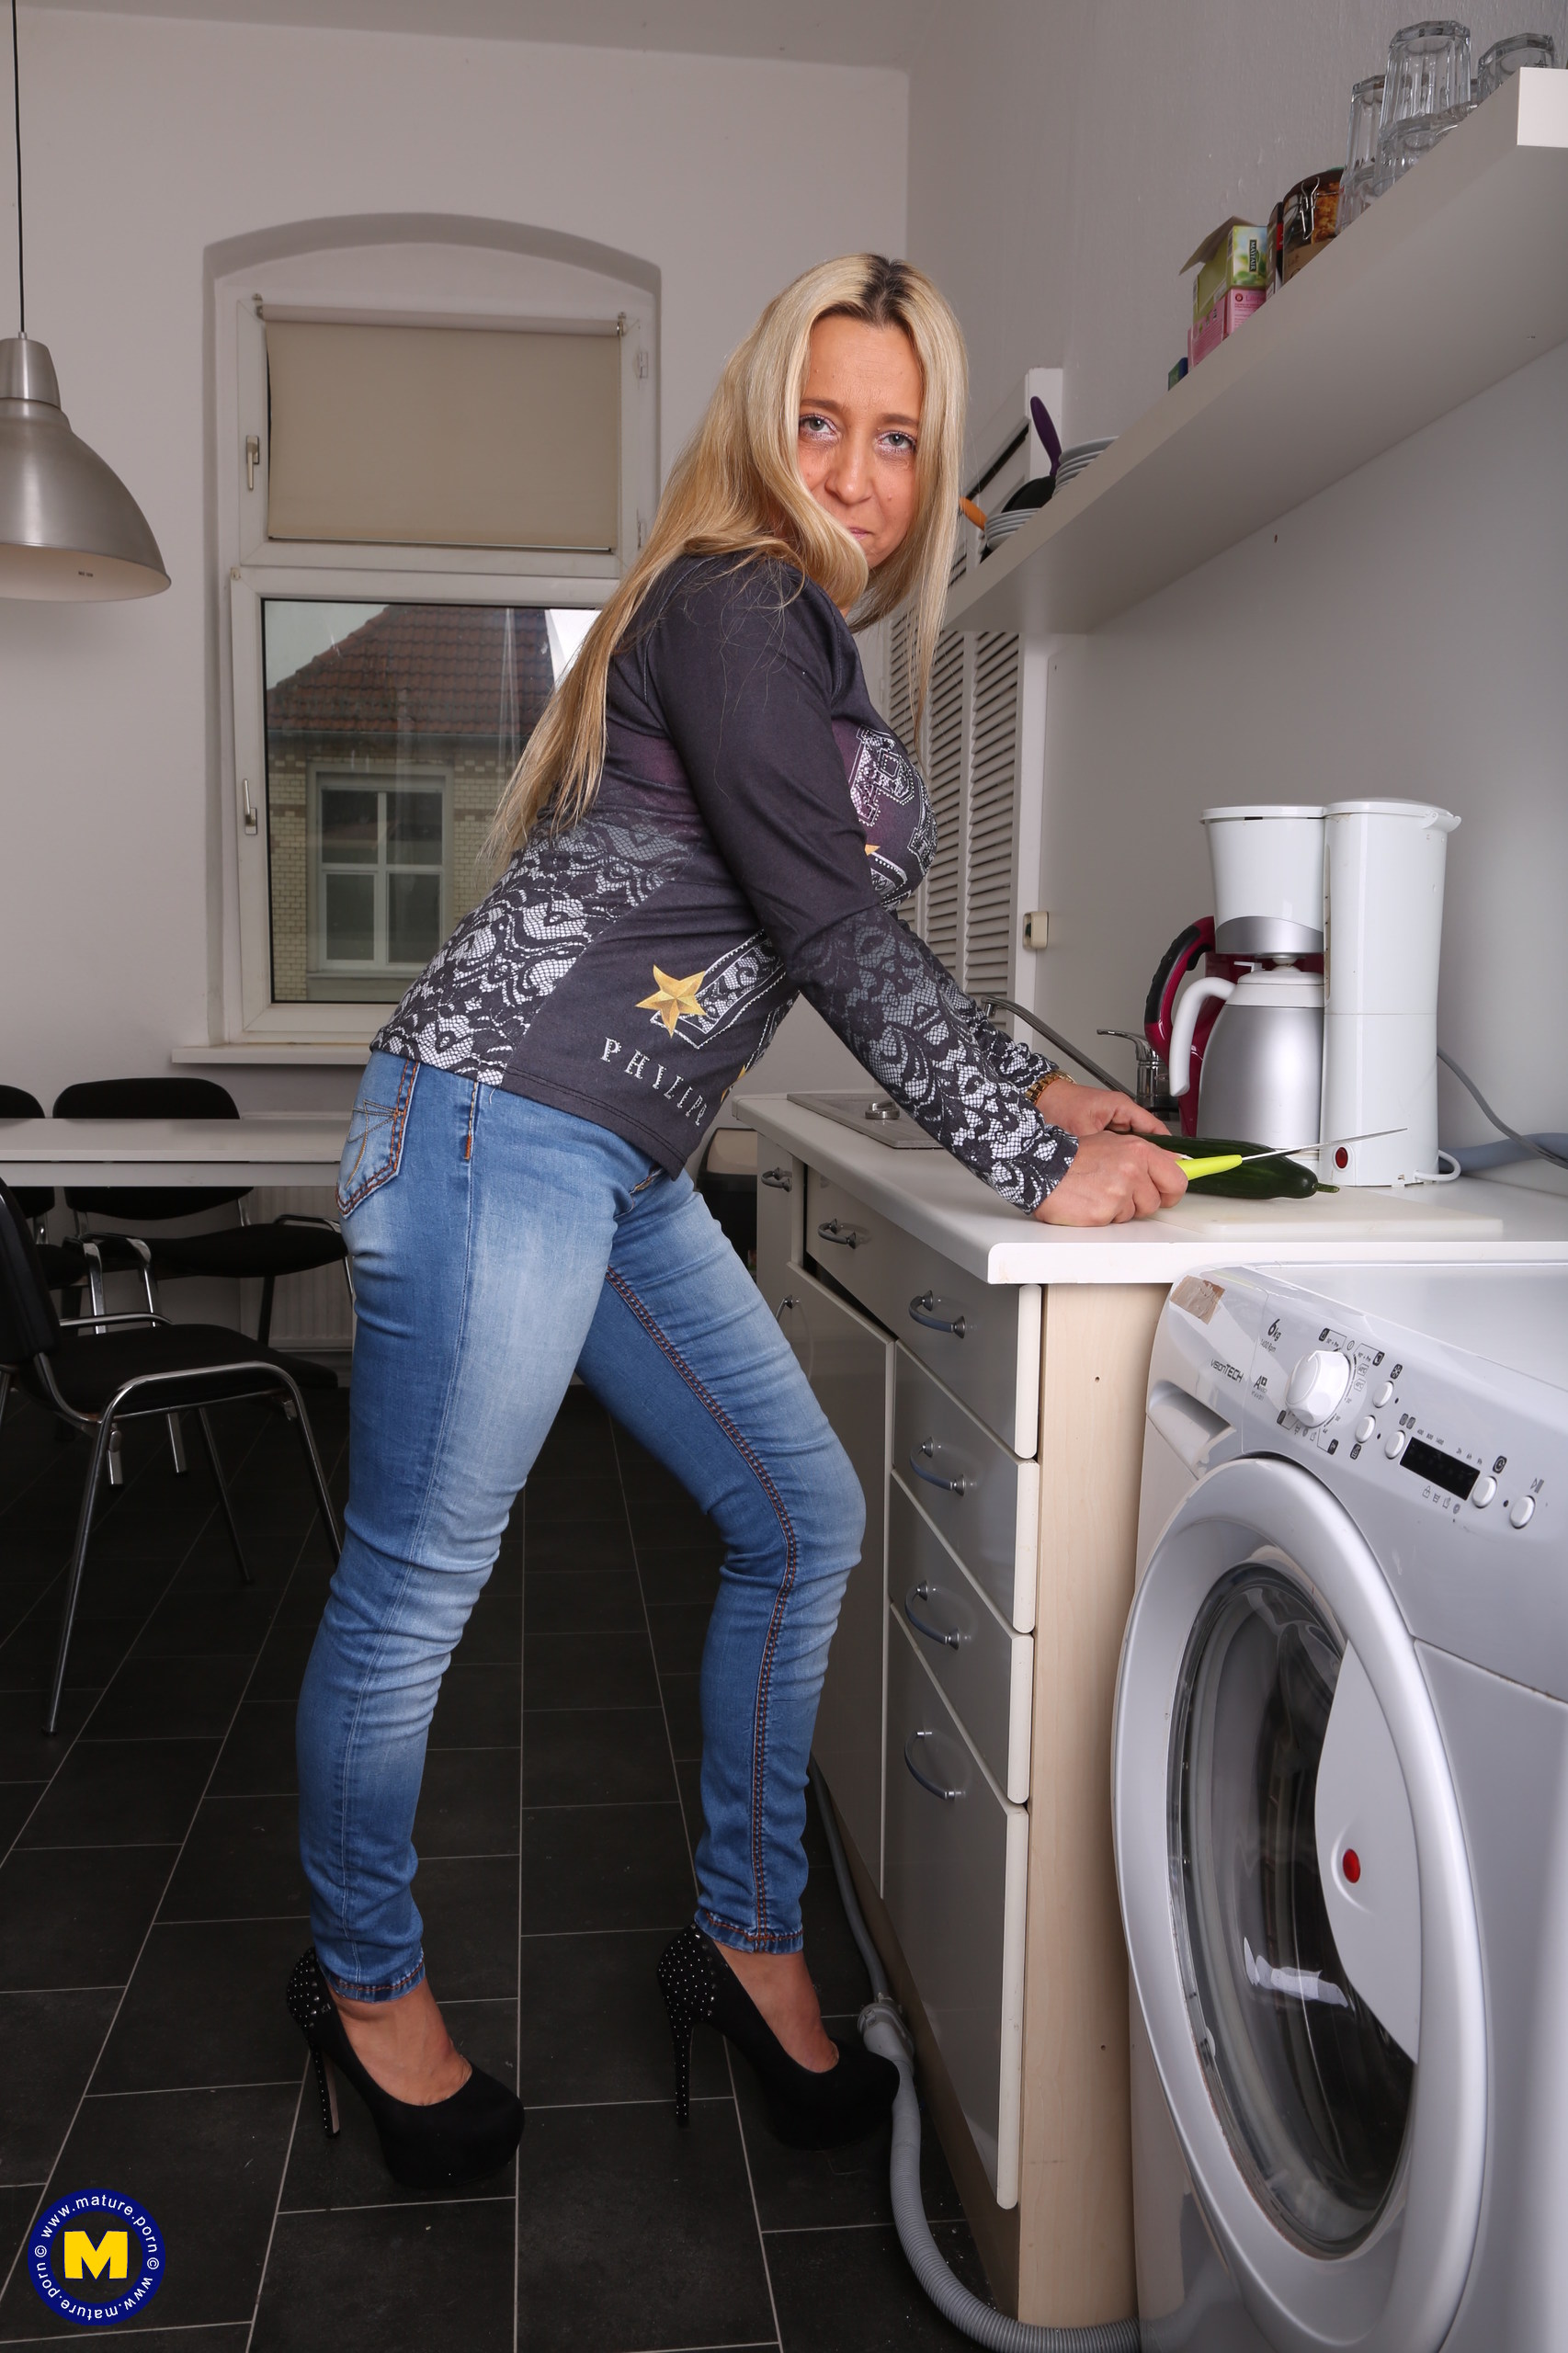 Naughty German mom toying in her kitchen with her cucumber